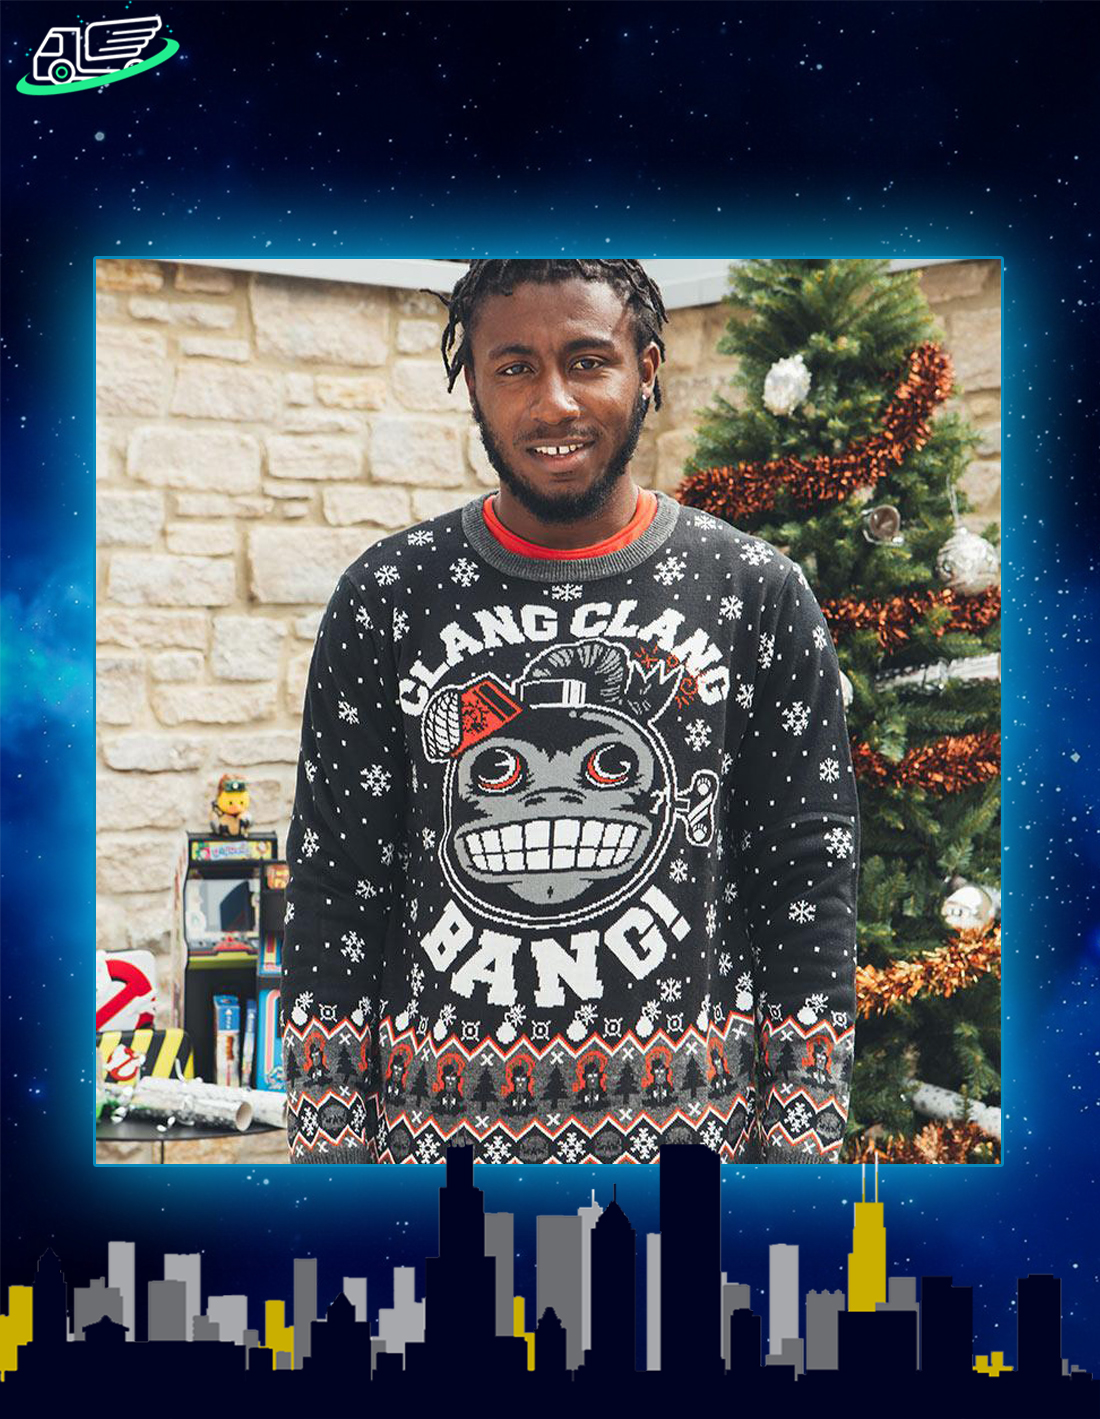 Call of duty monkey bomb clang clang bang ugly christmas sweater and jumper